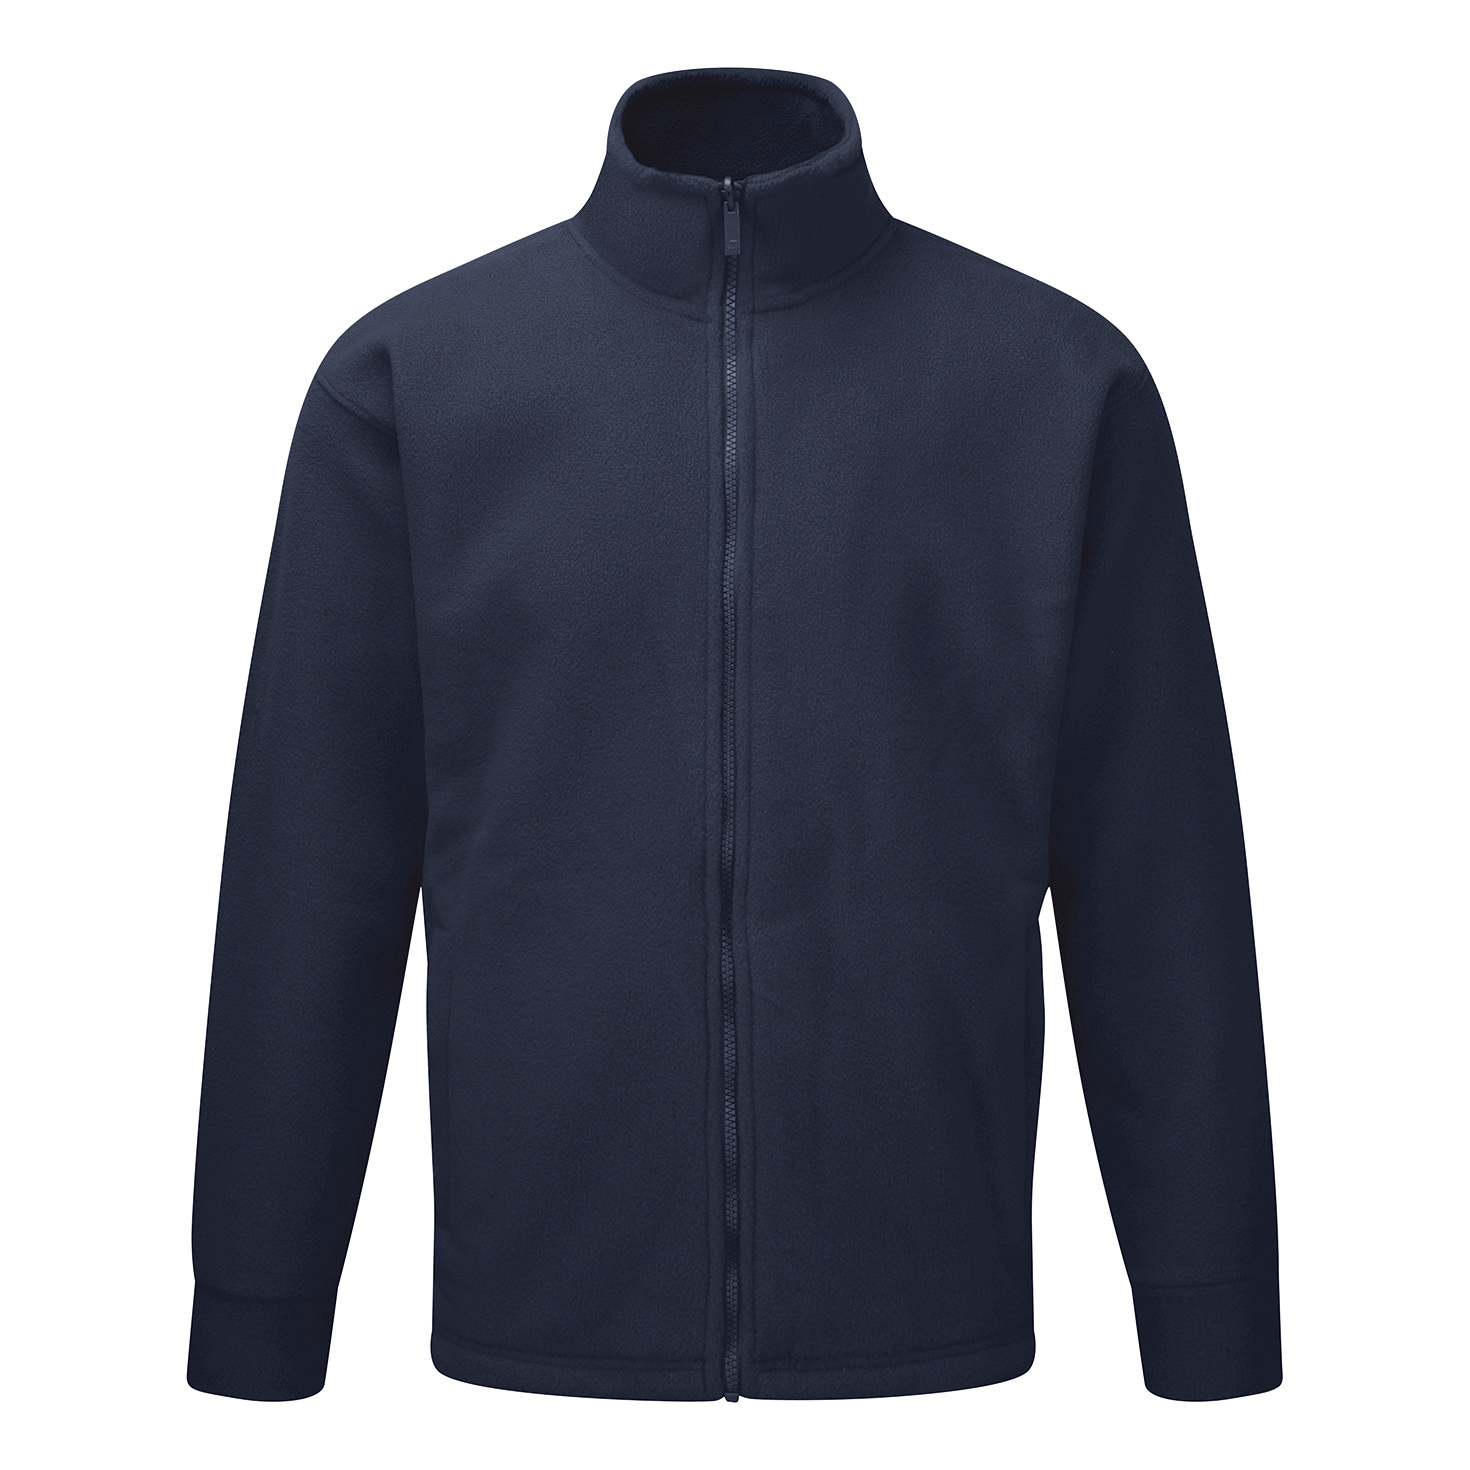 Classic Fleece Jacket Elasticated Cuffs Full Zip Front XL Navy Blue Ref FLJNXL *1-3 Days Lead Time*